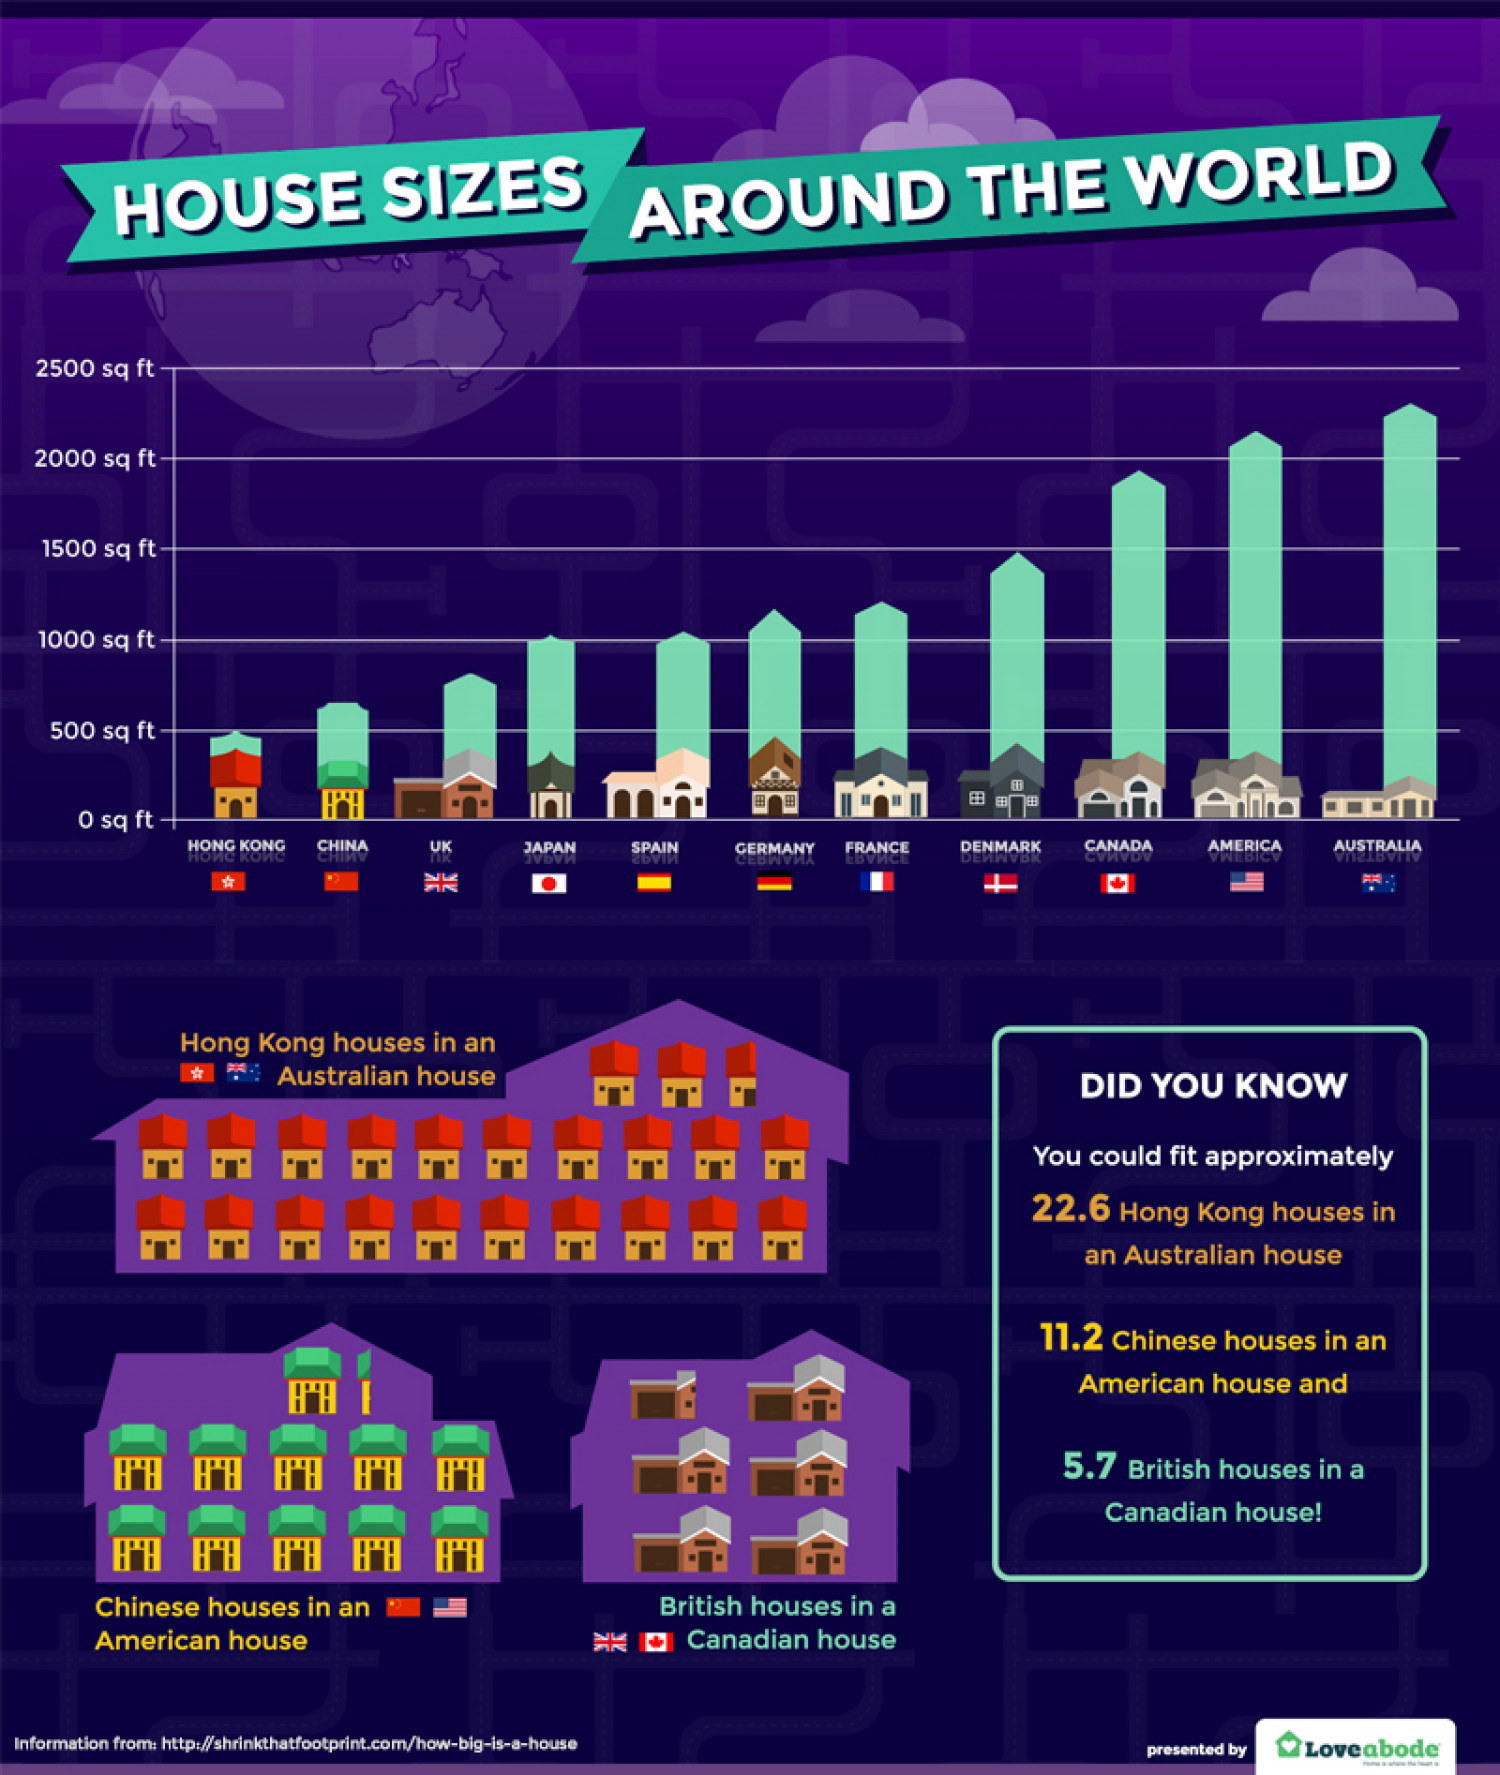 Average House Sizes Around The World